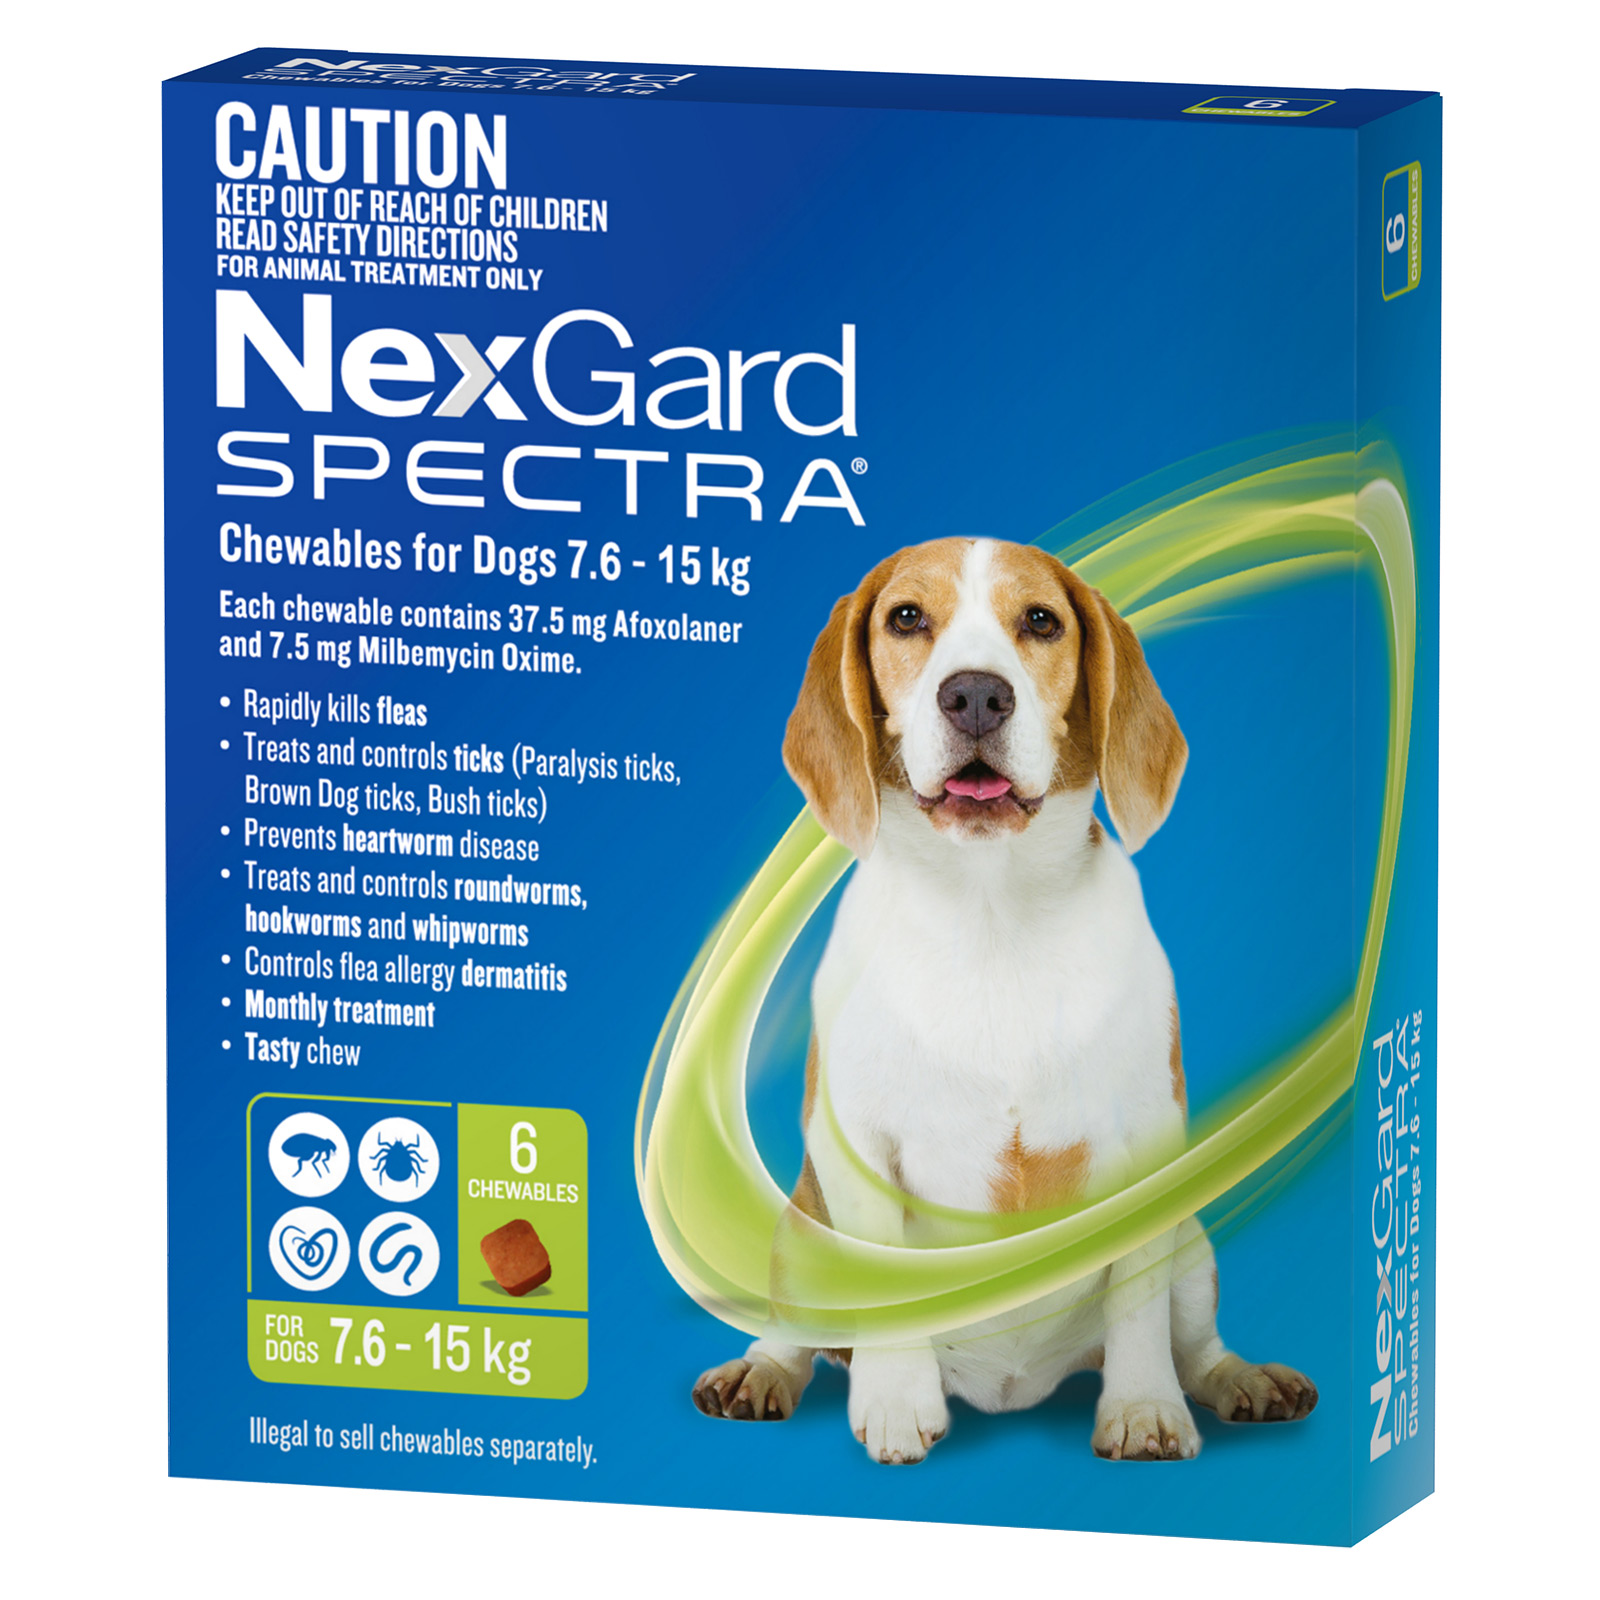 NexGard Spectra Chewables For Dogs Green 7.6-15kg 6 Pack - $97.25